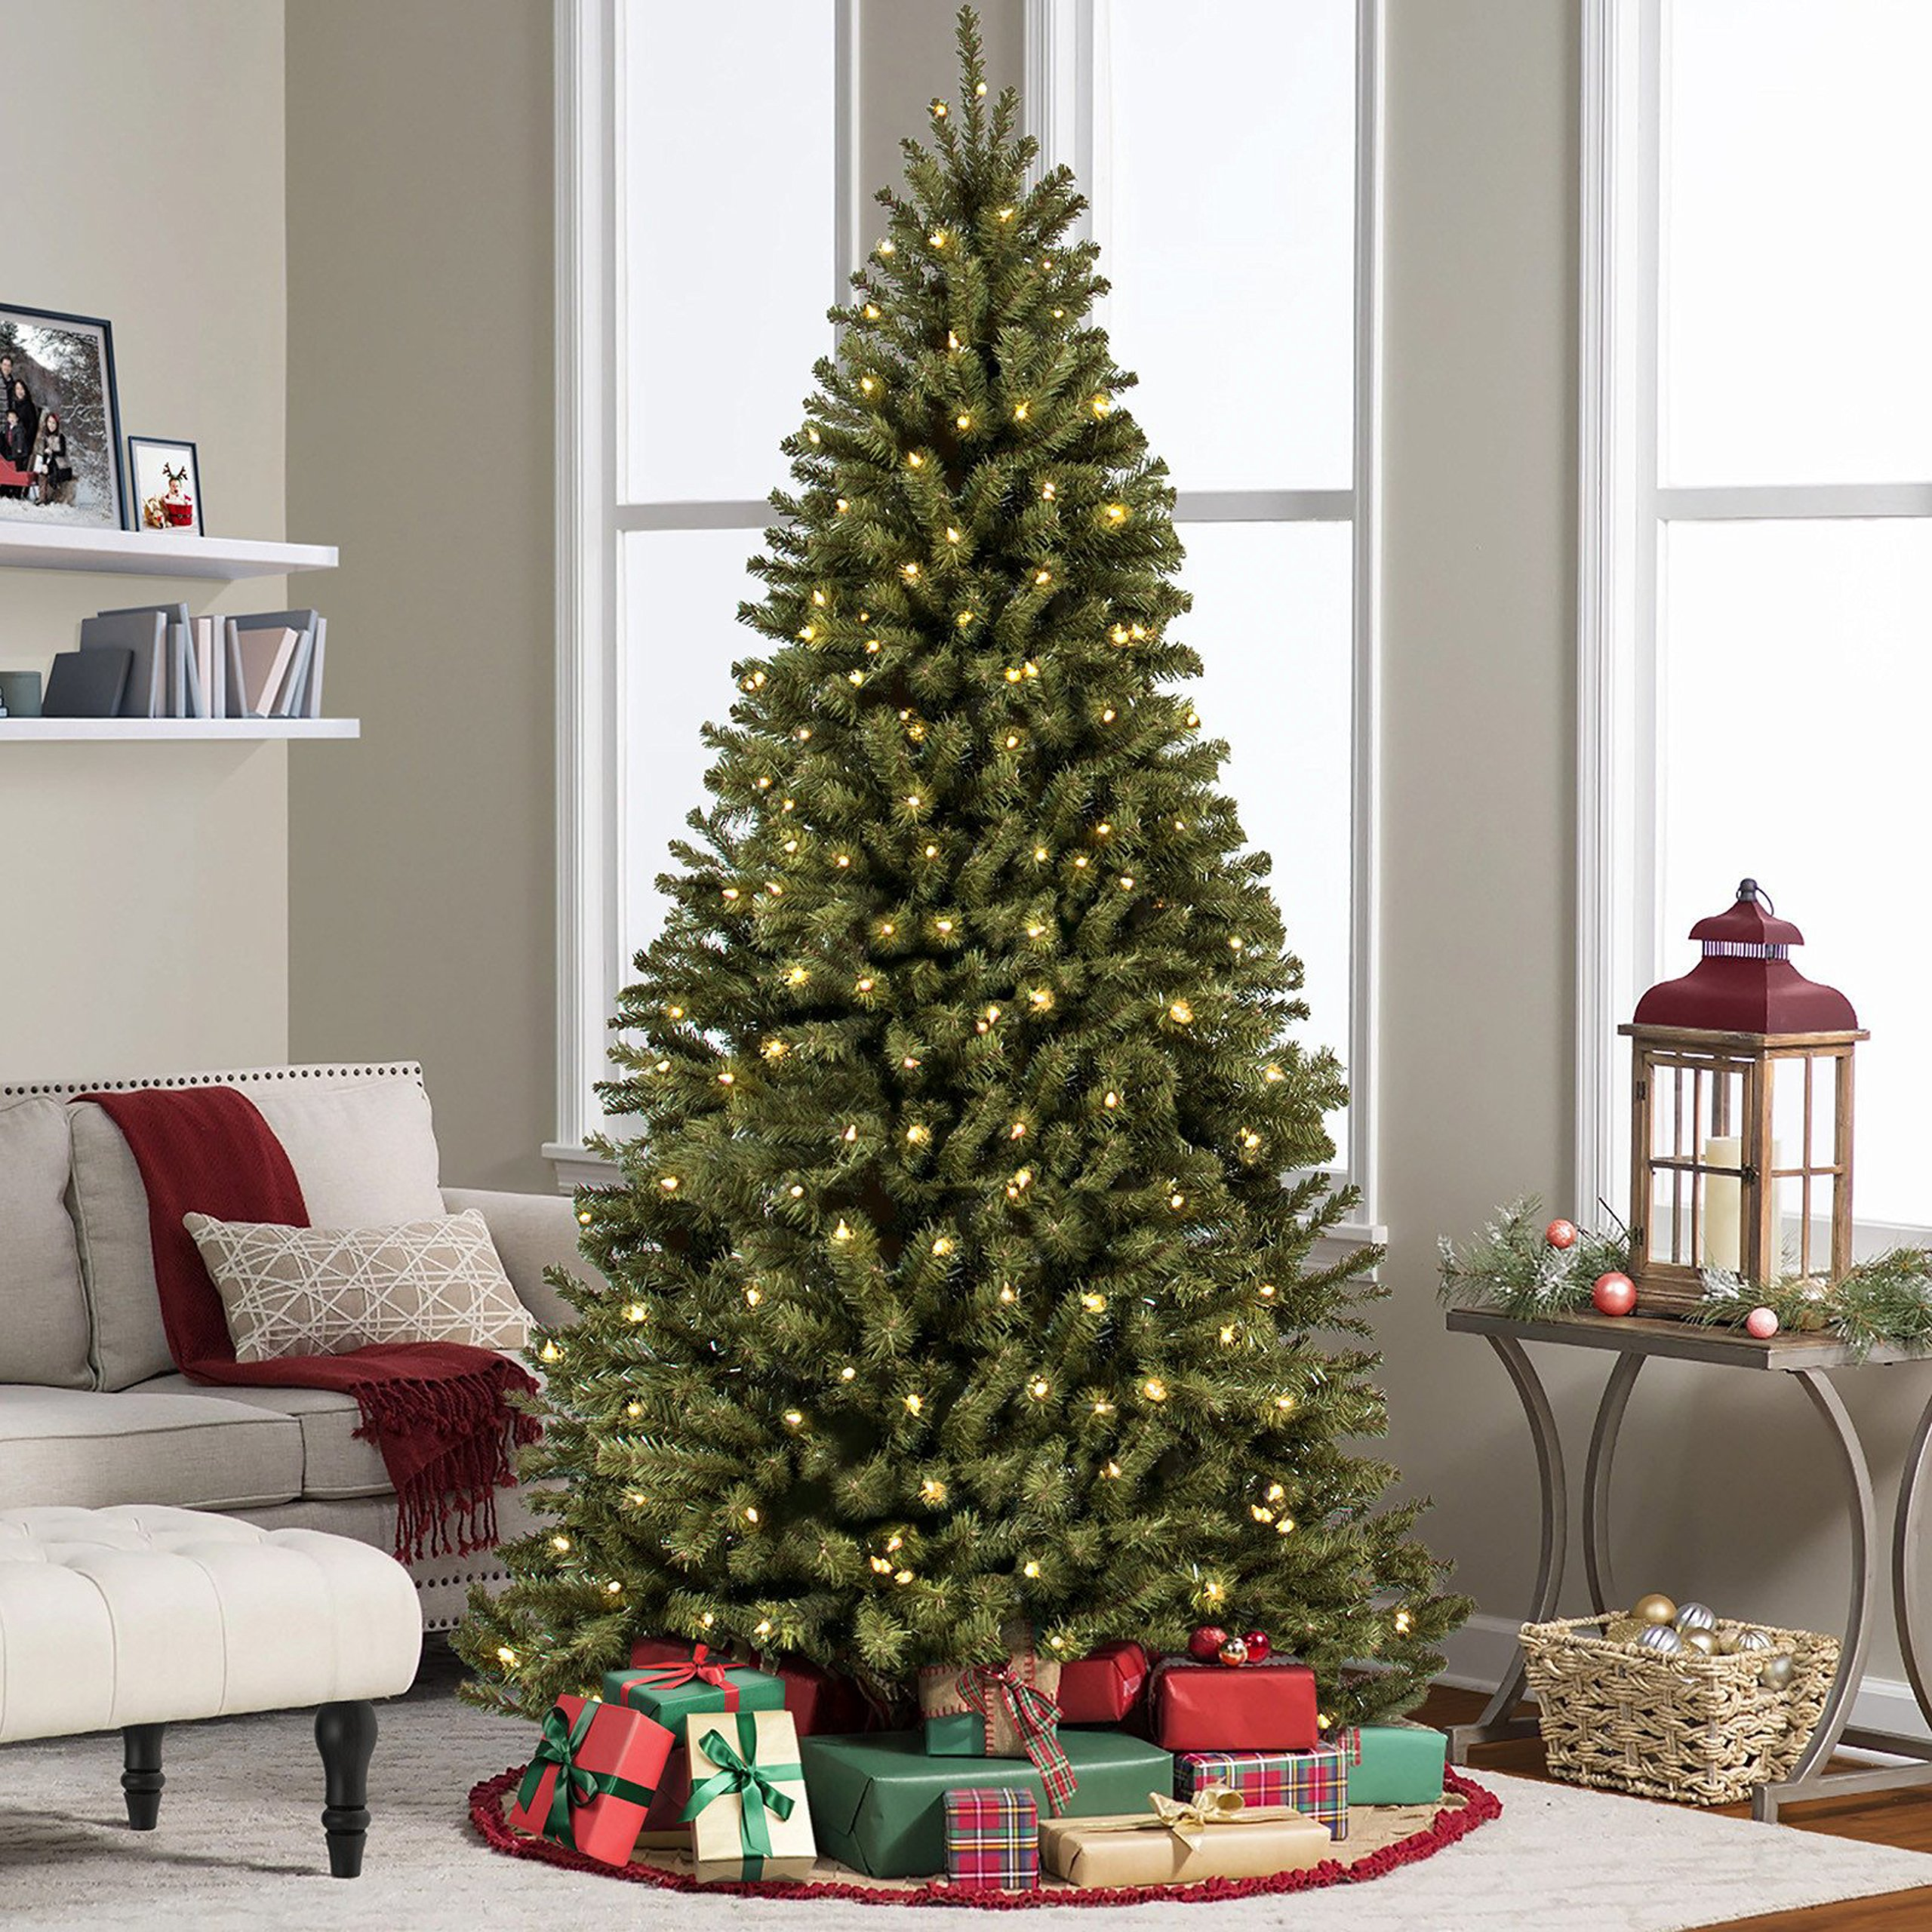 Best Choice Products 6ft Pre-Lit Spruce Hinged Artificial Christmas Tree w/ 250 LED Lights, Foldable Stand - Green by Best Choice Products